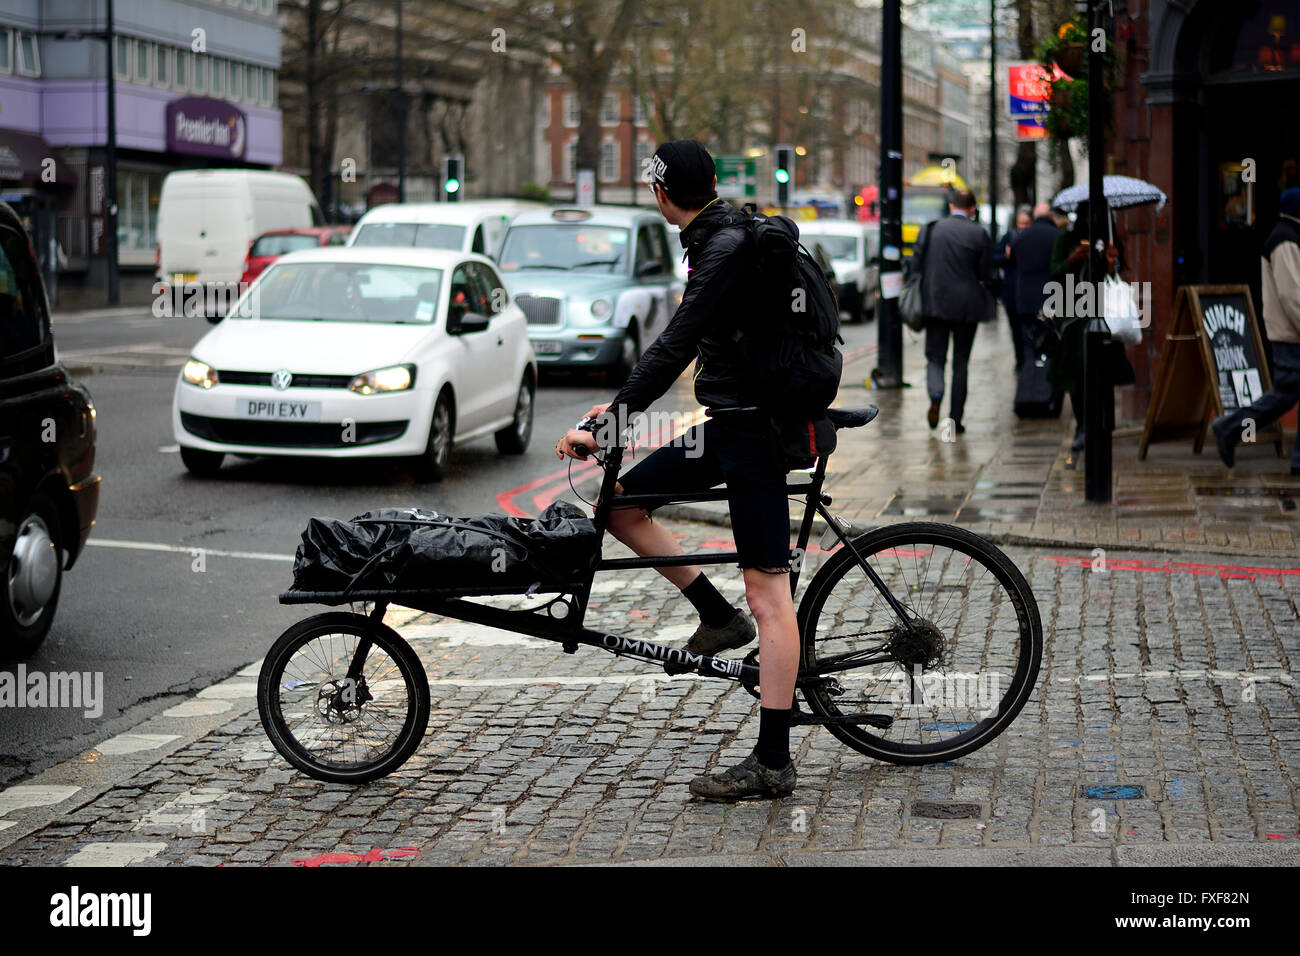 Cycle courier amongst traffic in wet weather in London Stock